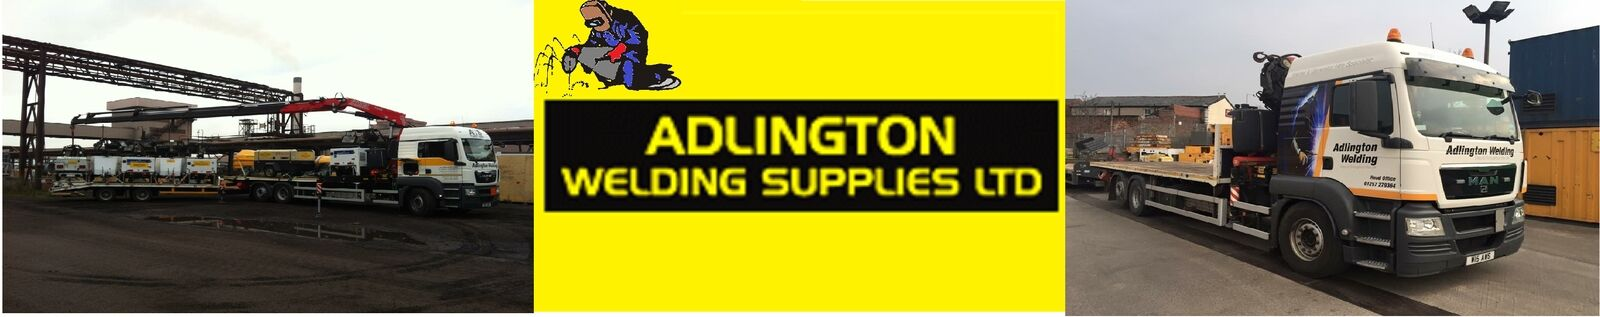 Adlington-Welding-Supplies